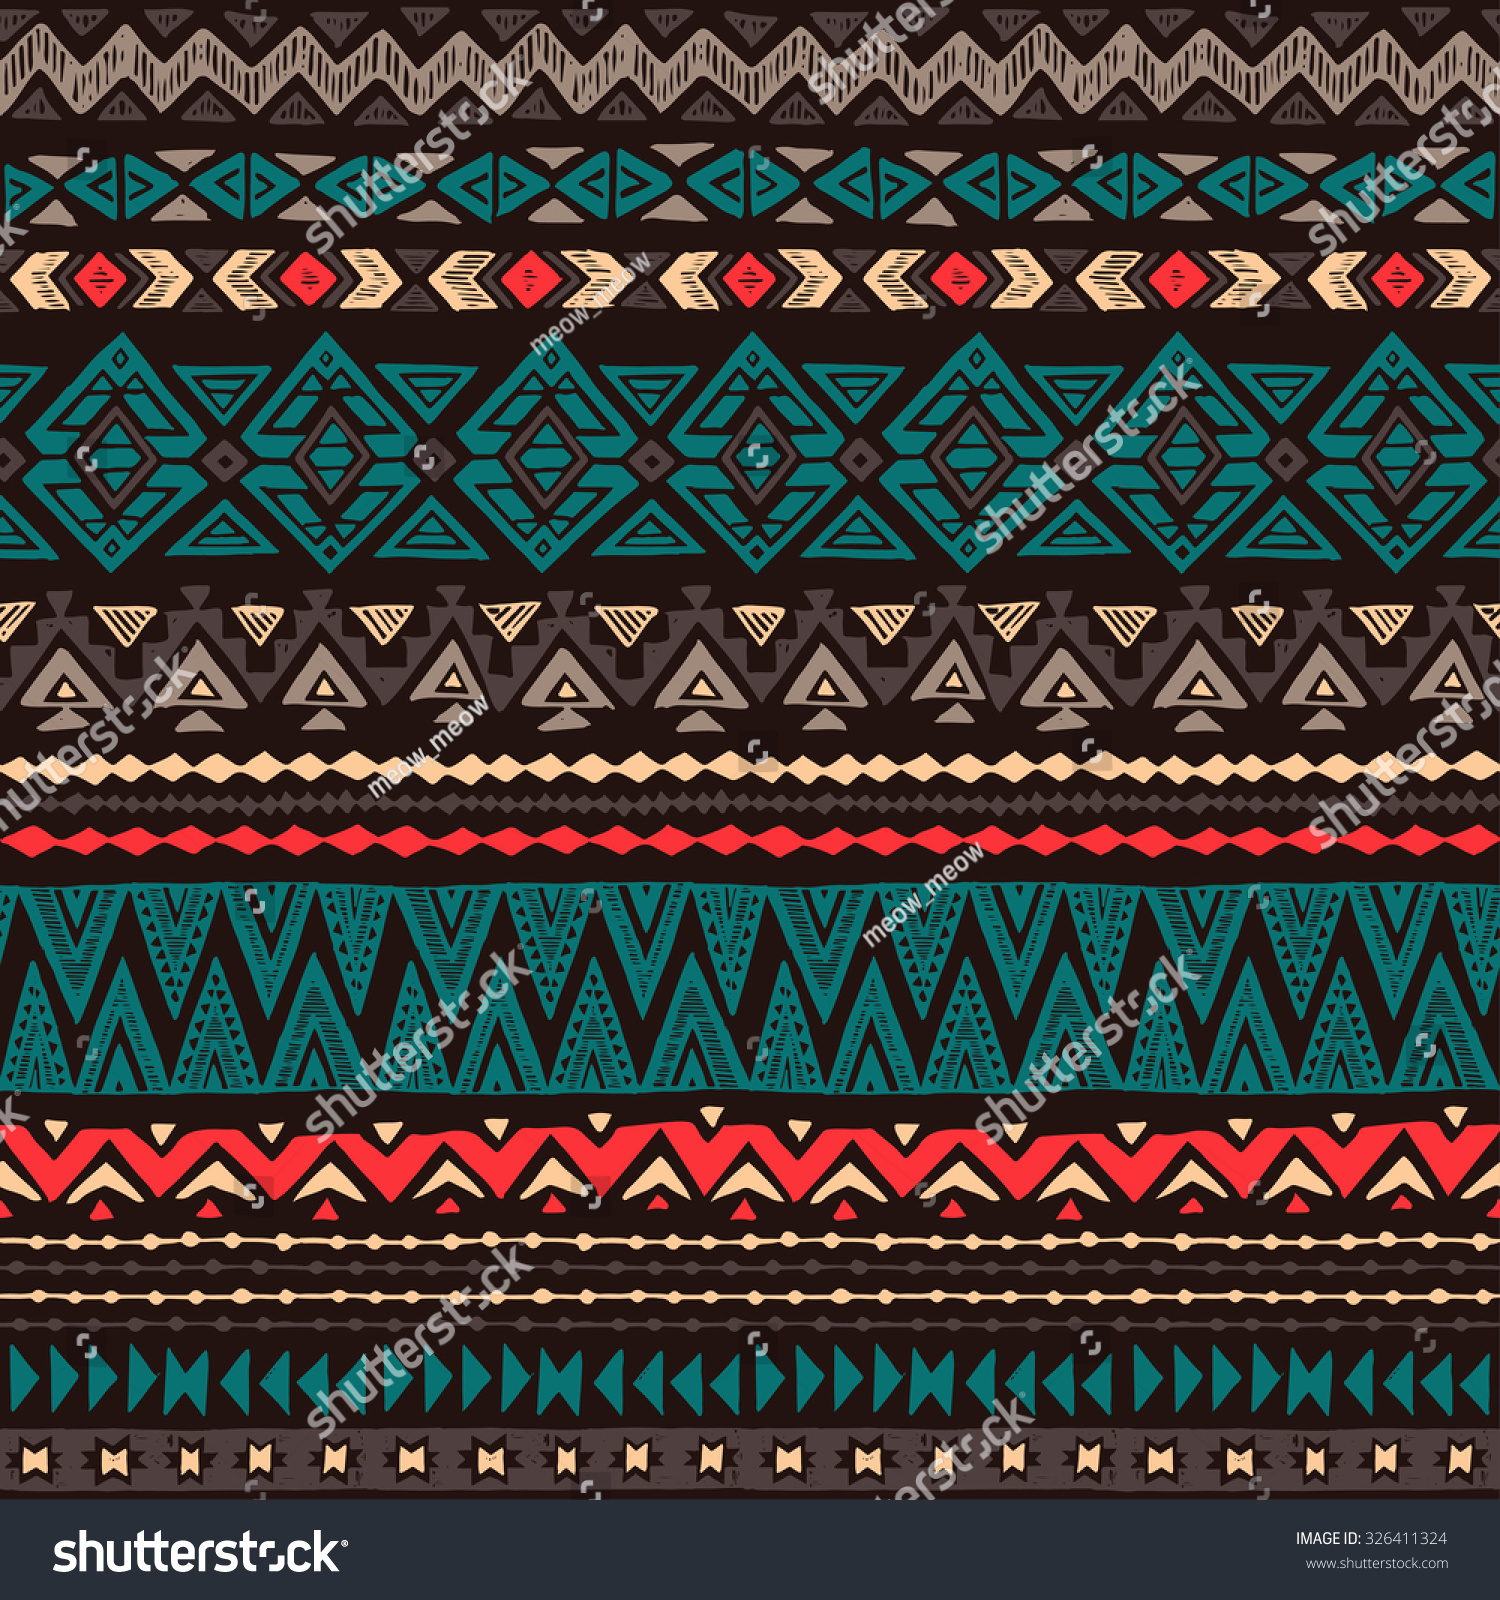 southwestern aztec wallpaper - photo #41